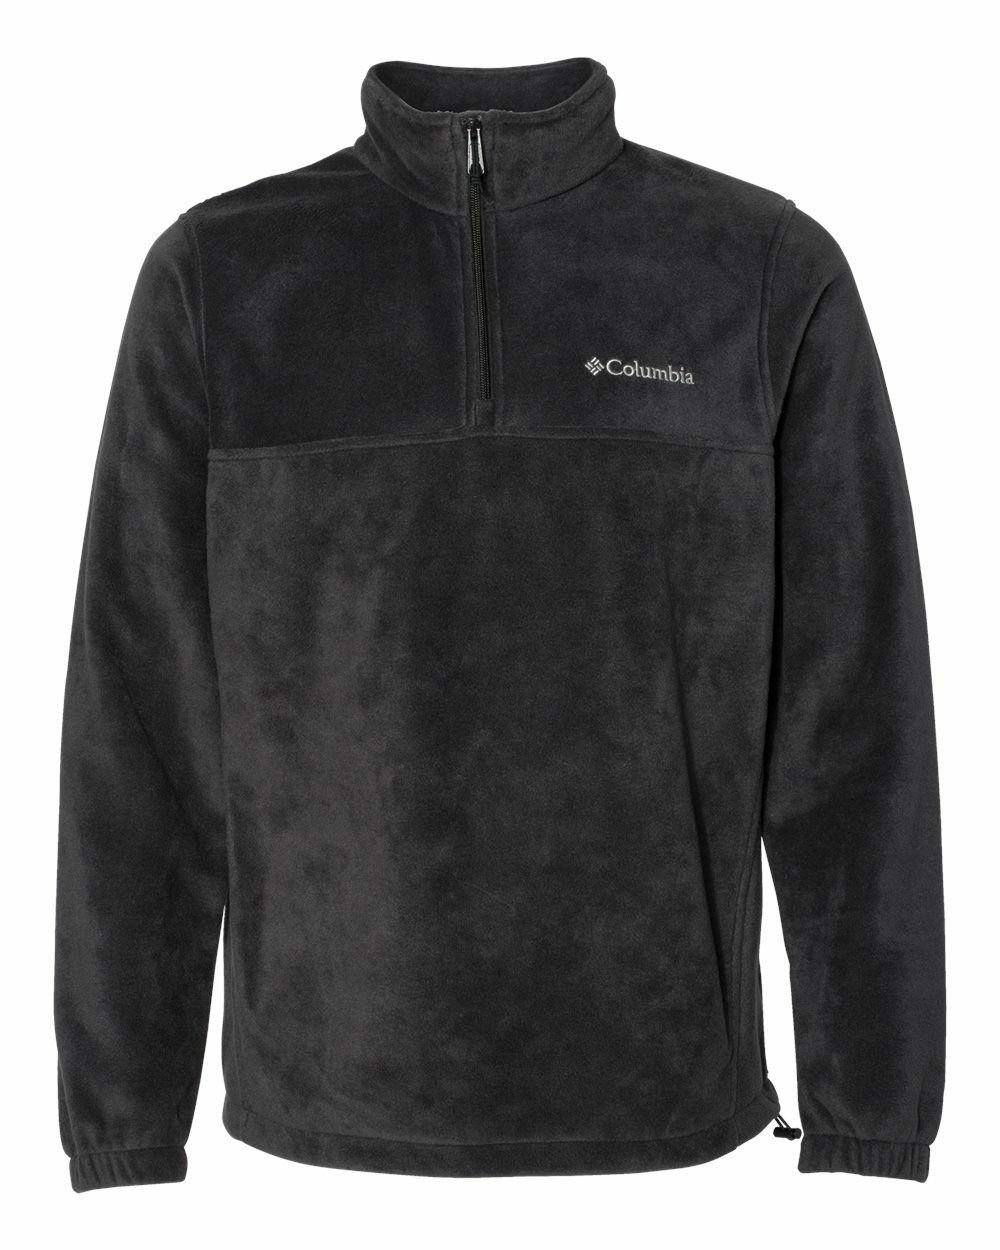 Columbia Sport - Homme Polaire, Taille S-4XL Polaire, Homme 1/2 Zip , Pull-Over Veste, Steens d76ffe